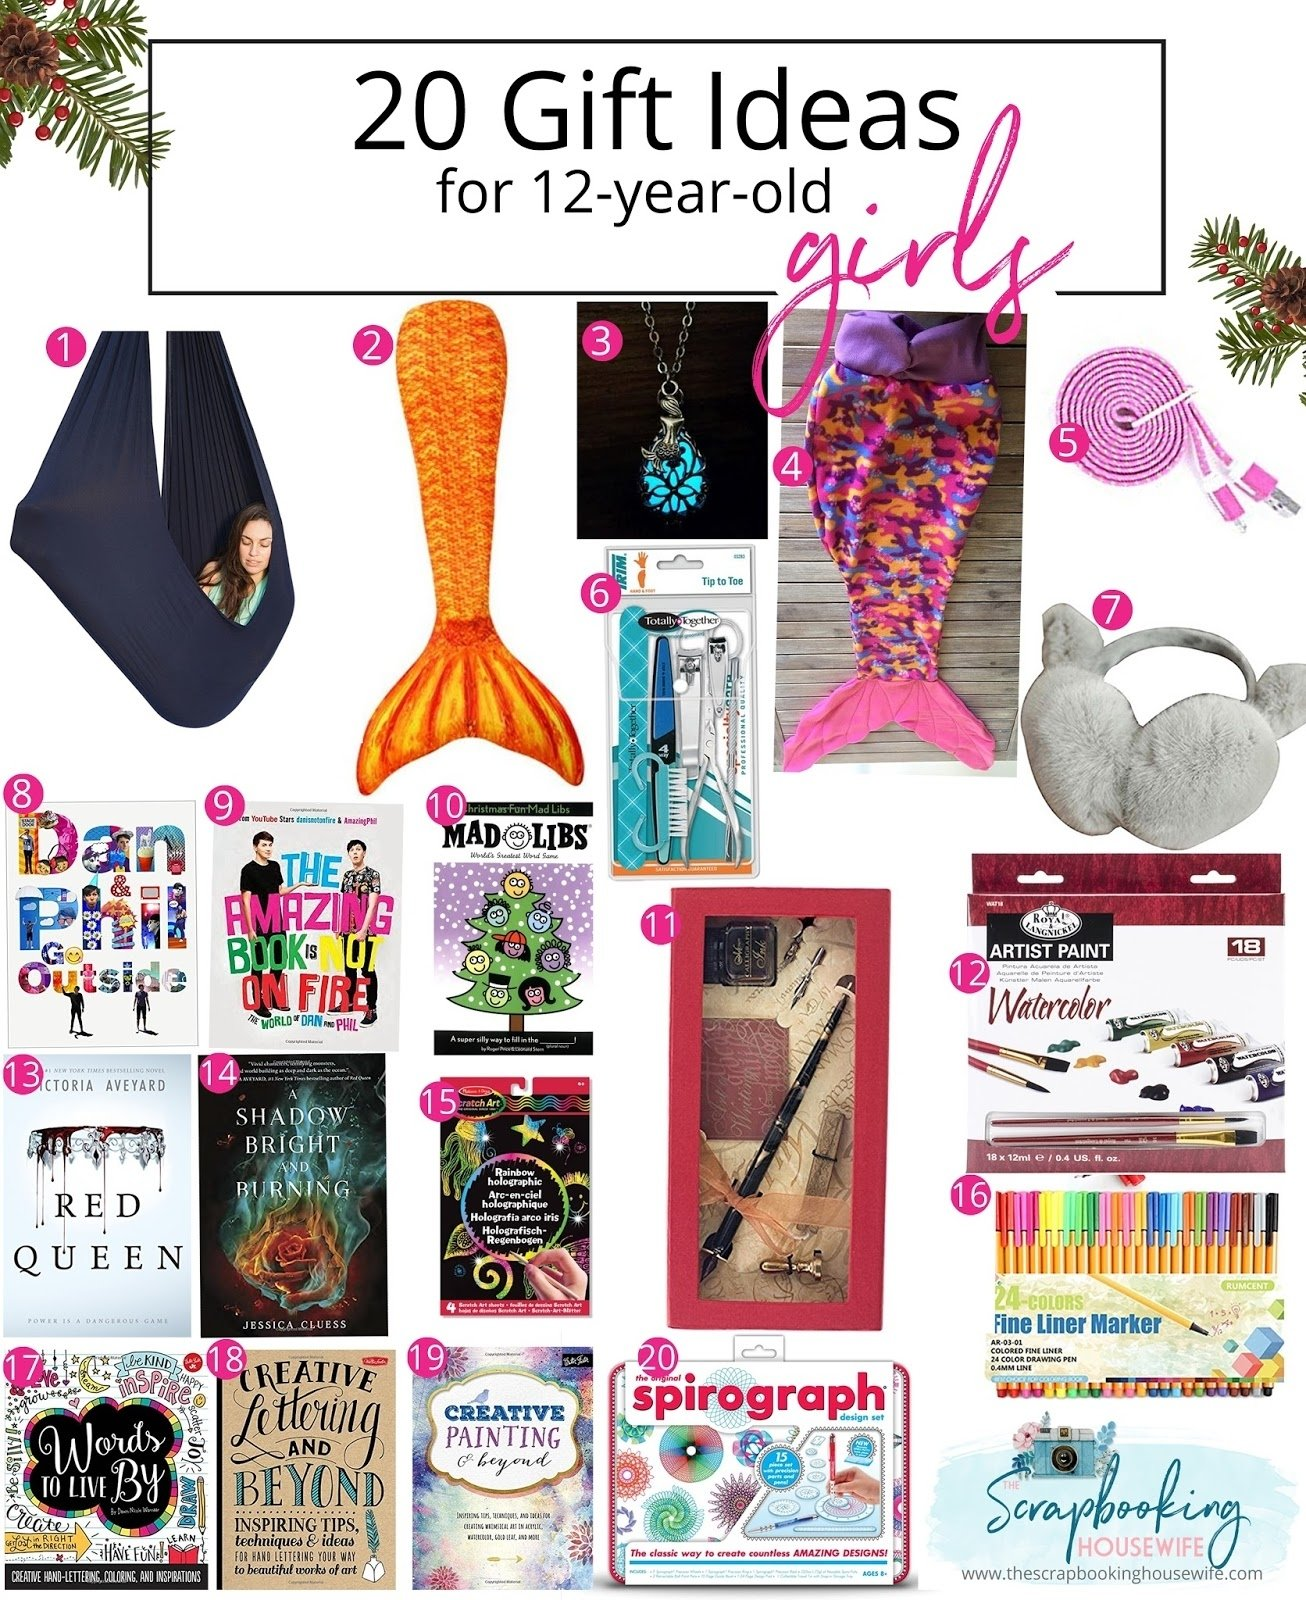 10 Attractive Gift Ideas For 12 Year Old Girl ellabella designs 20 gift ideas for 12 year old tween girls 23 2020